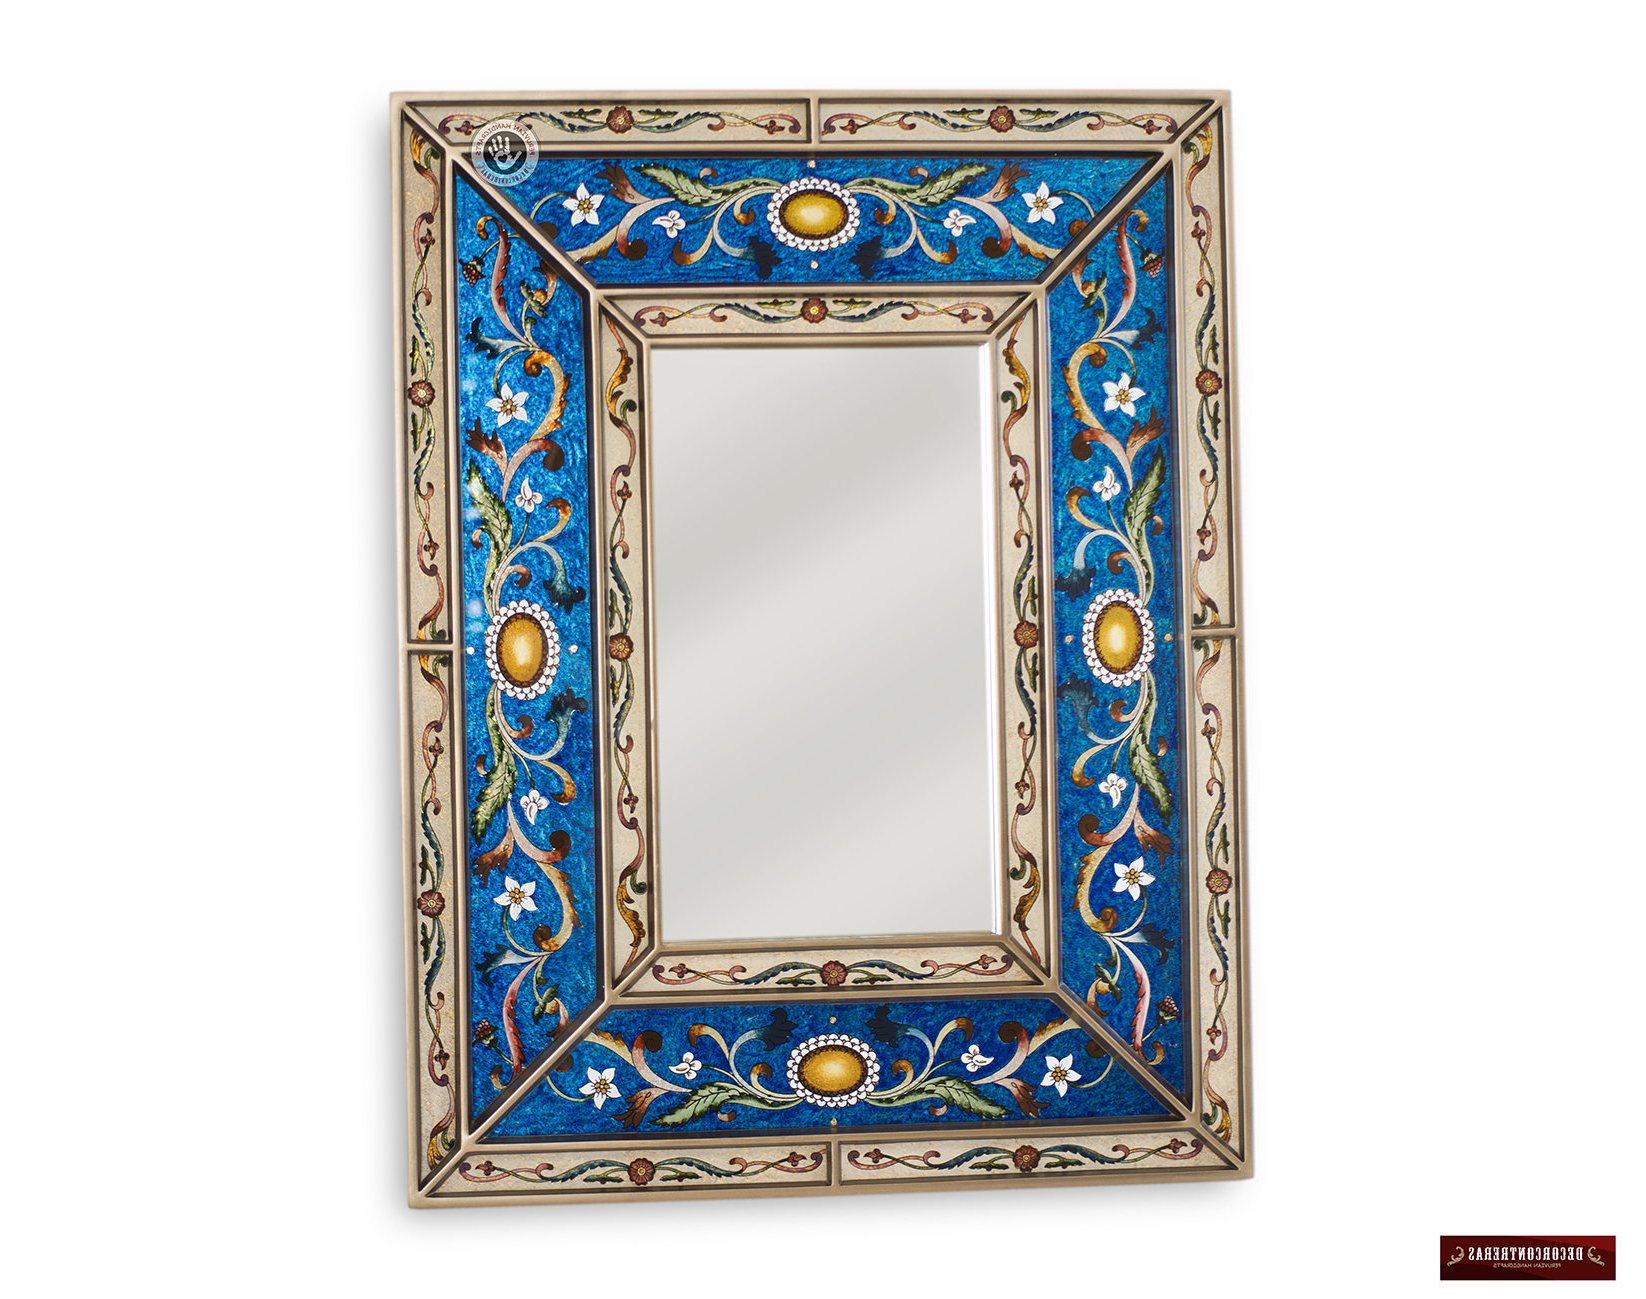 Wall Mirrors With Art In Most Recent Peruvian Blue Decorative Mirror – Arts Crafts Mirror Wall Vanity Mirror Hand Painted Glass Wood Rectangular Wall Mirror – Wall Mirrors (View 18 of 20)